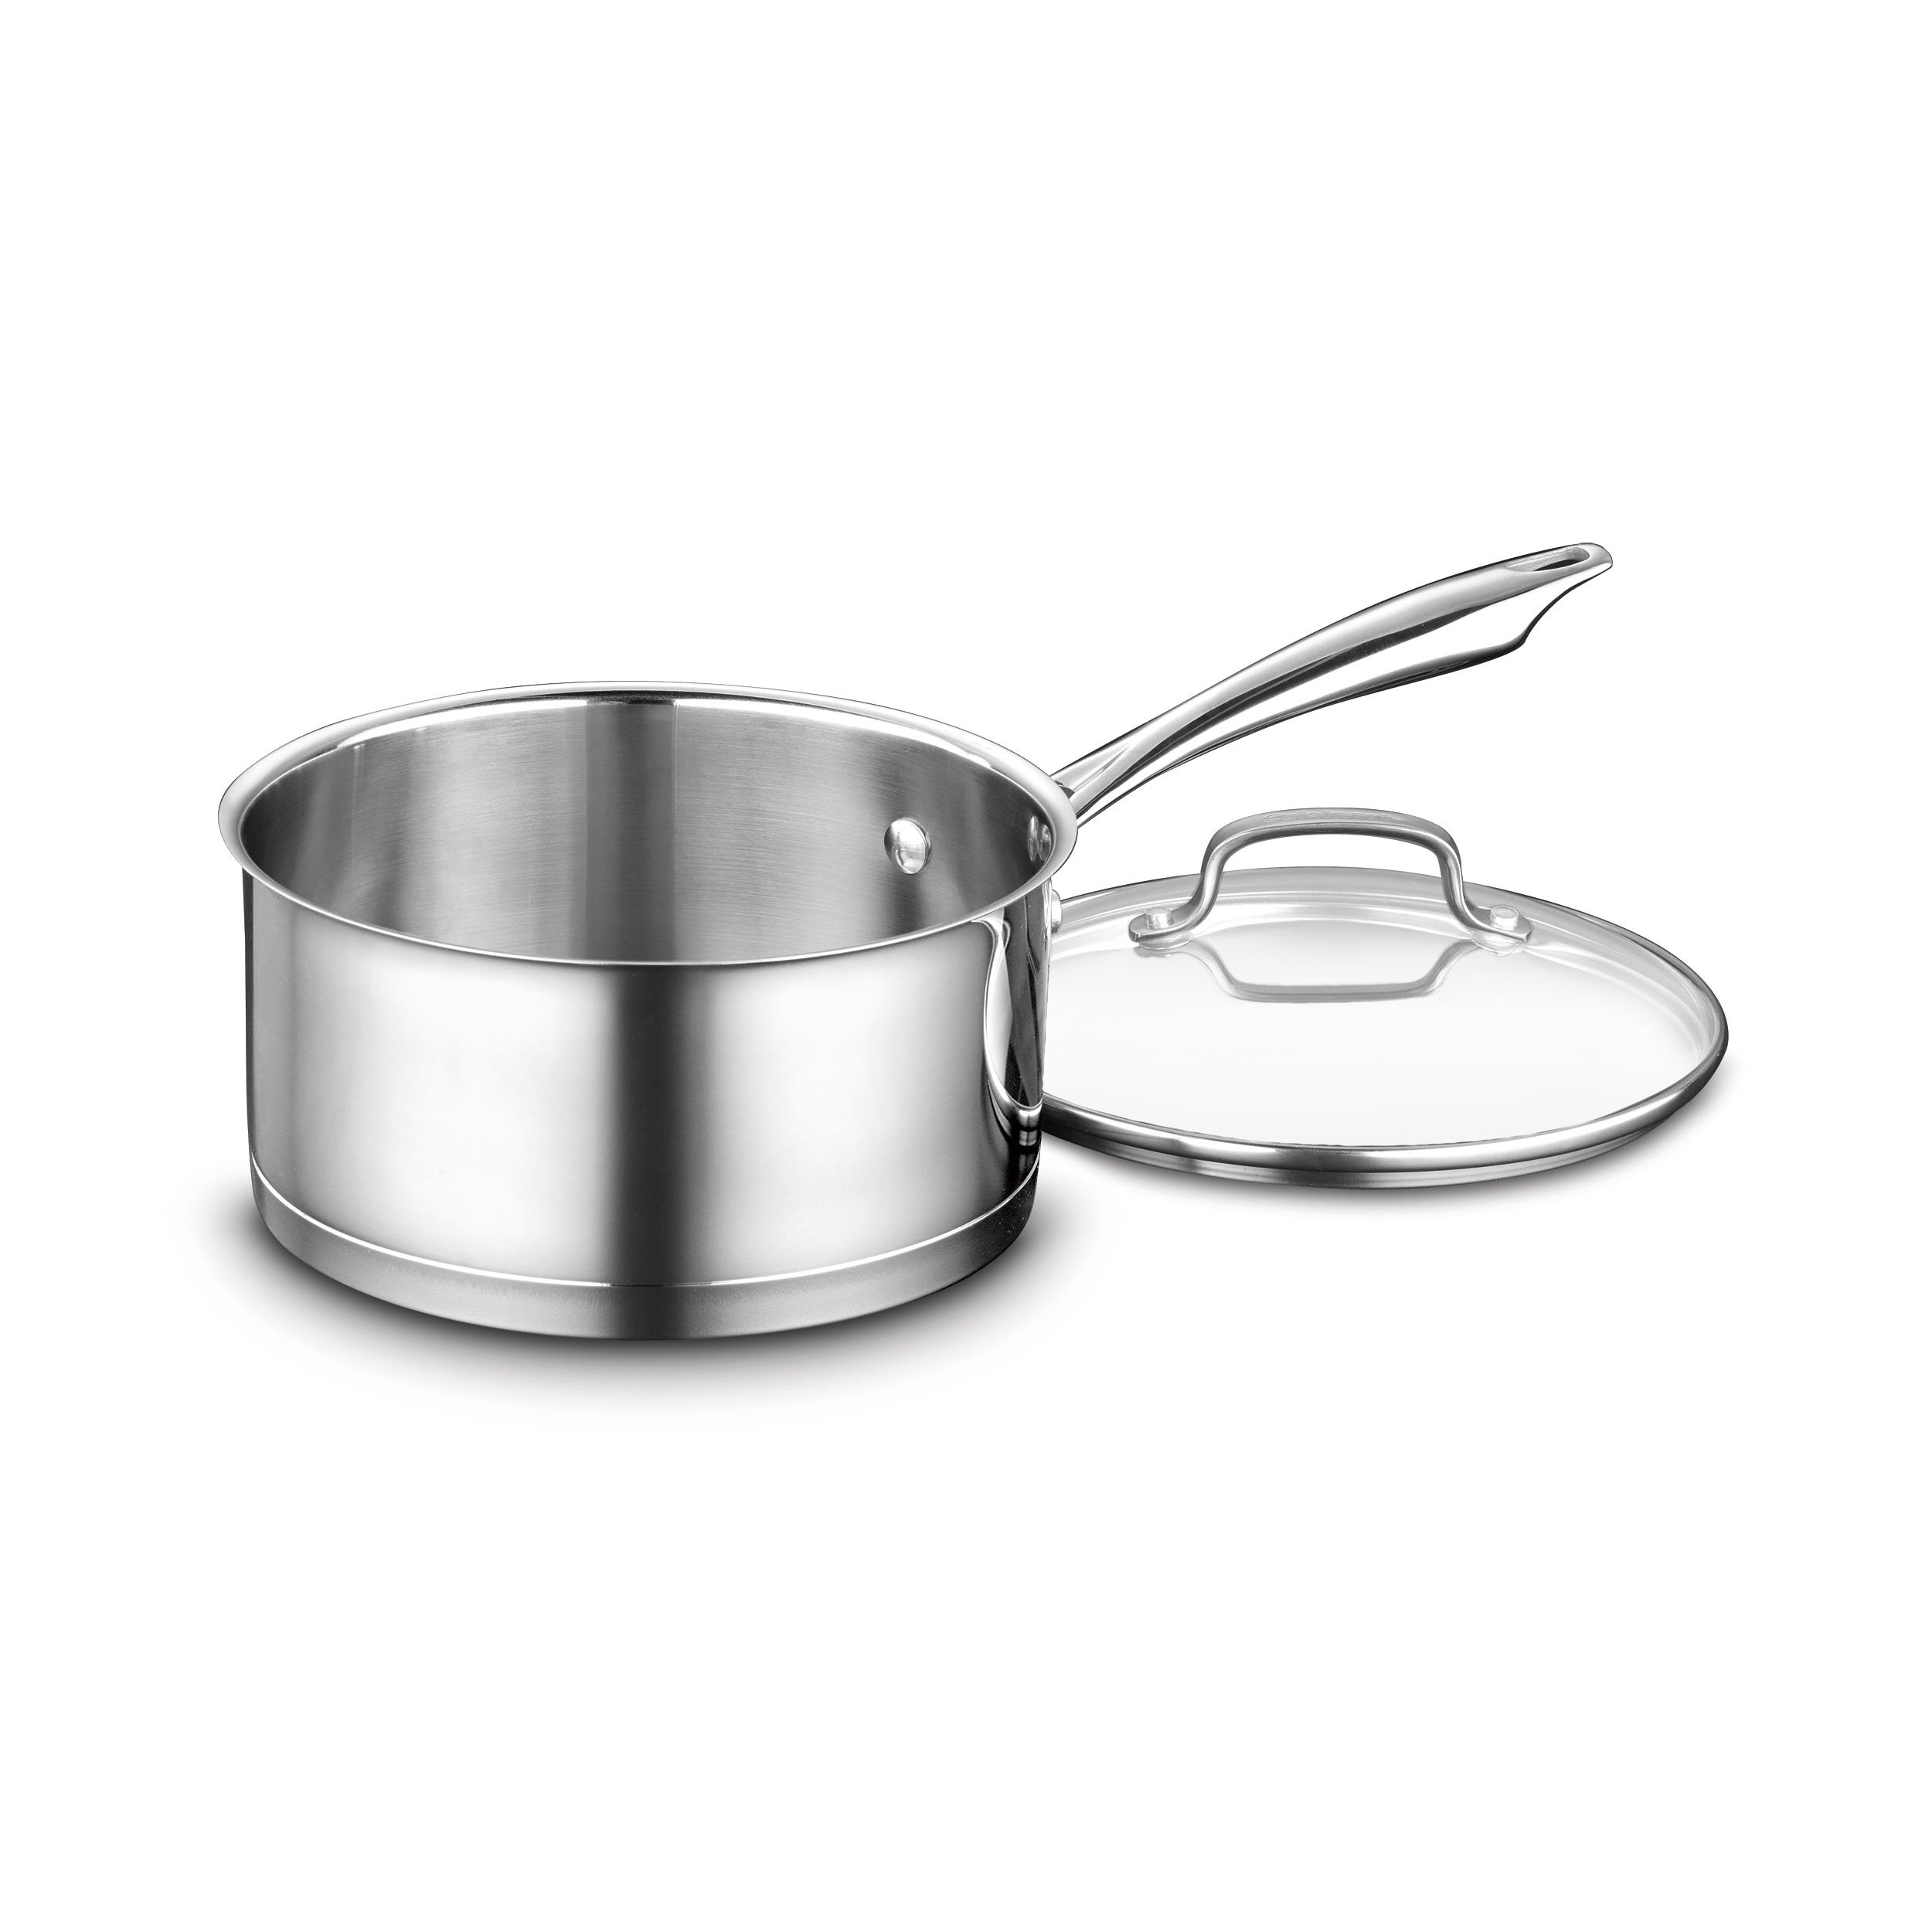 Cuisinart 89193-20 Professional Stainless Saucepan with Cover, 3-Quart, Stainless Steel by Cuisinart (Image #1)